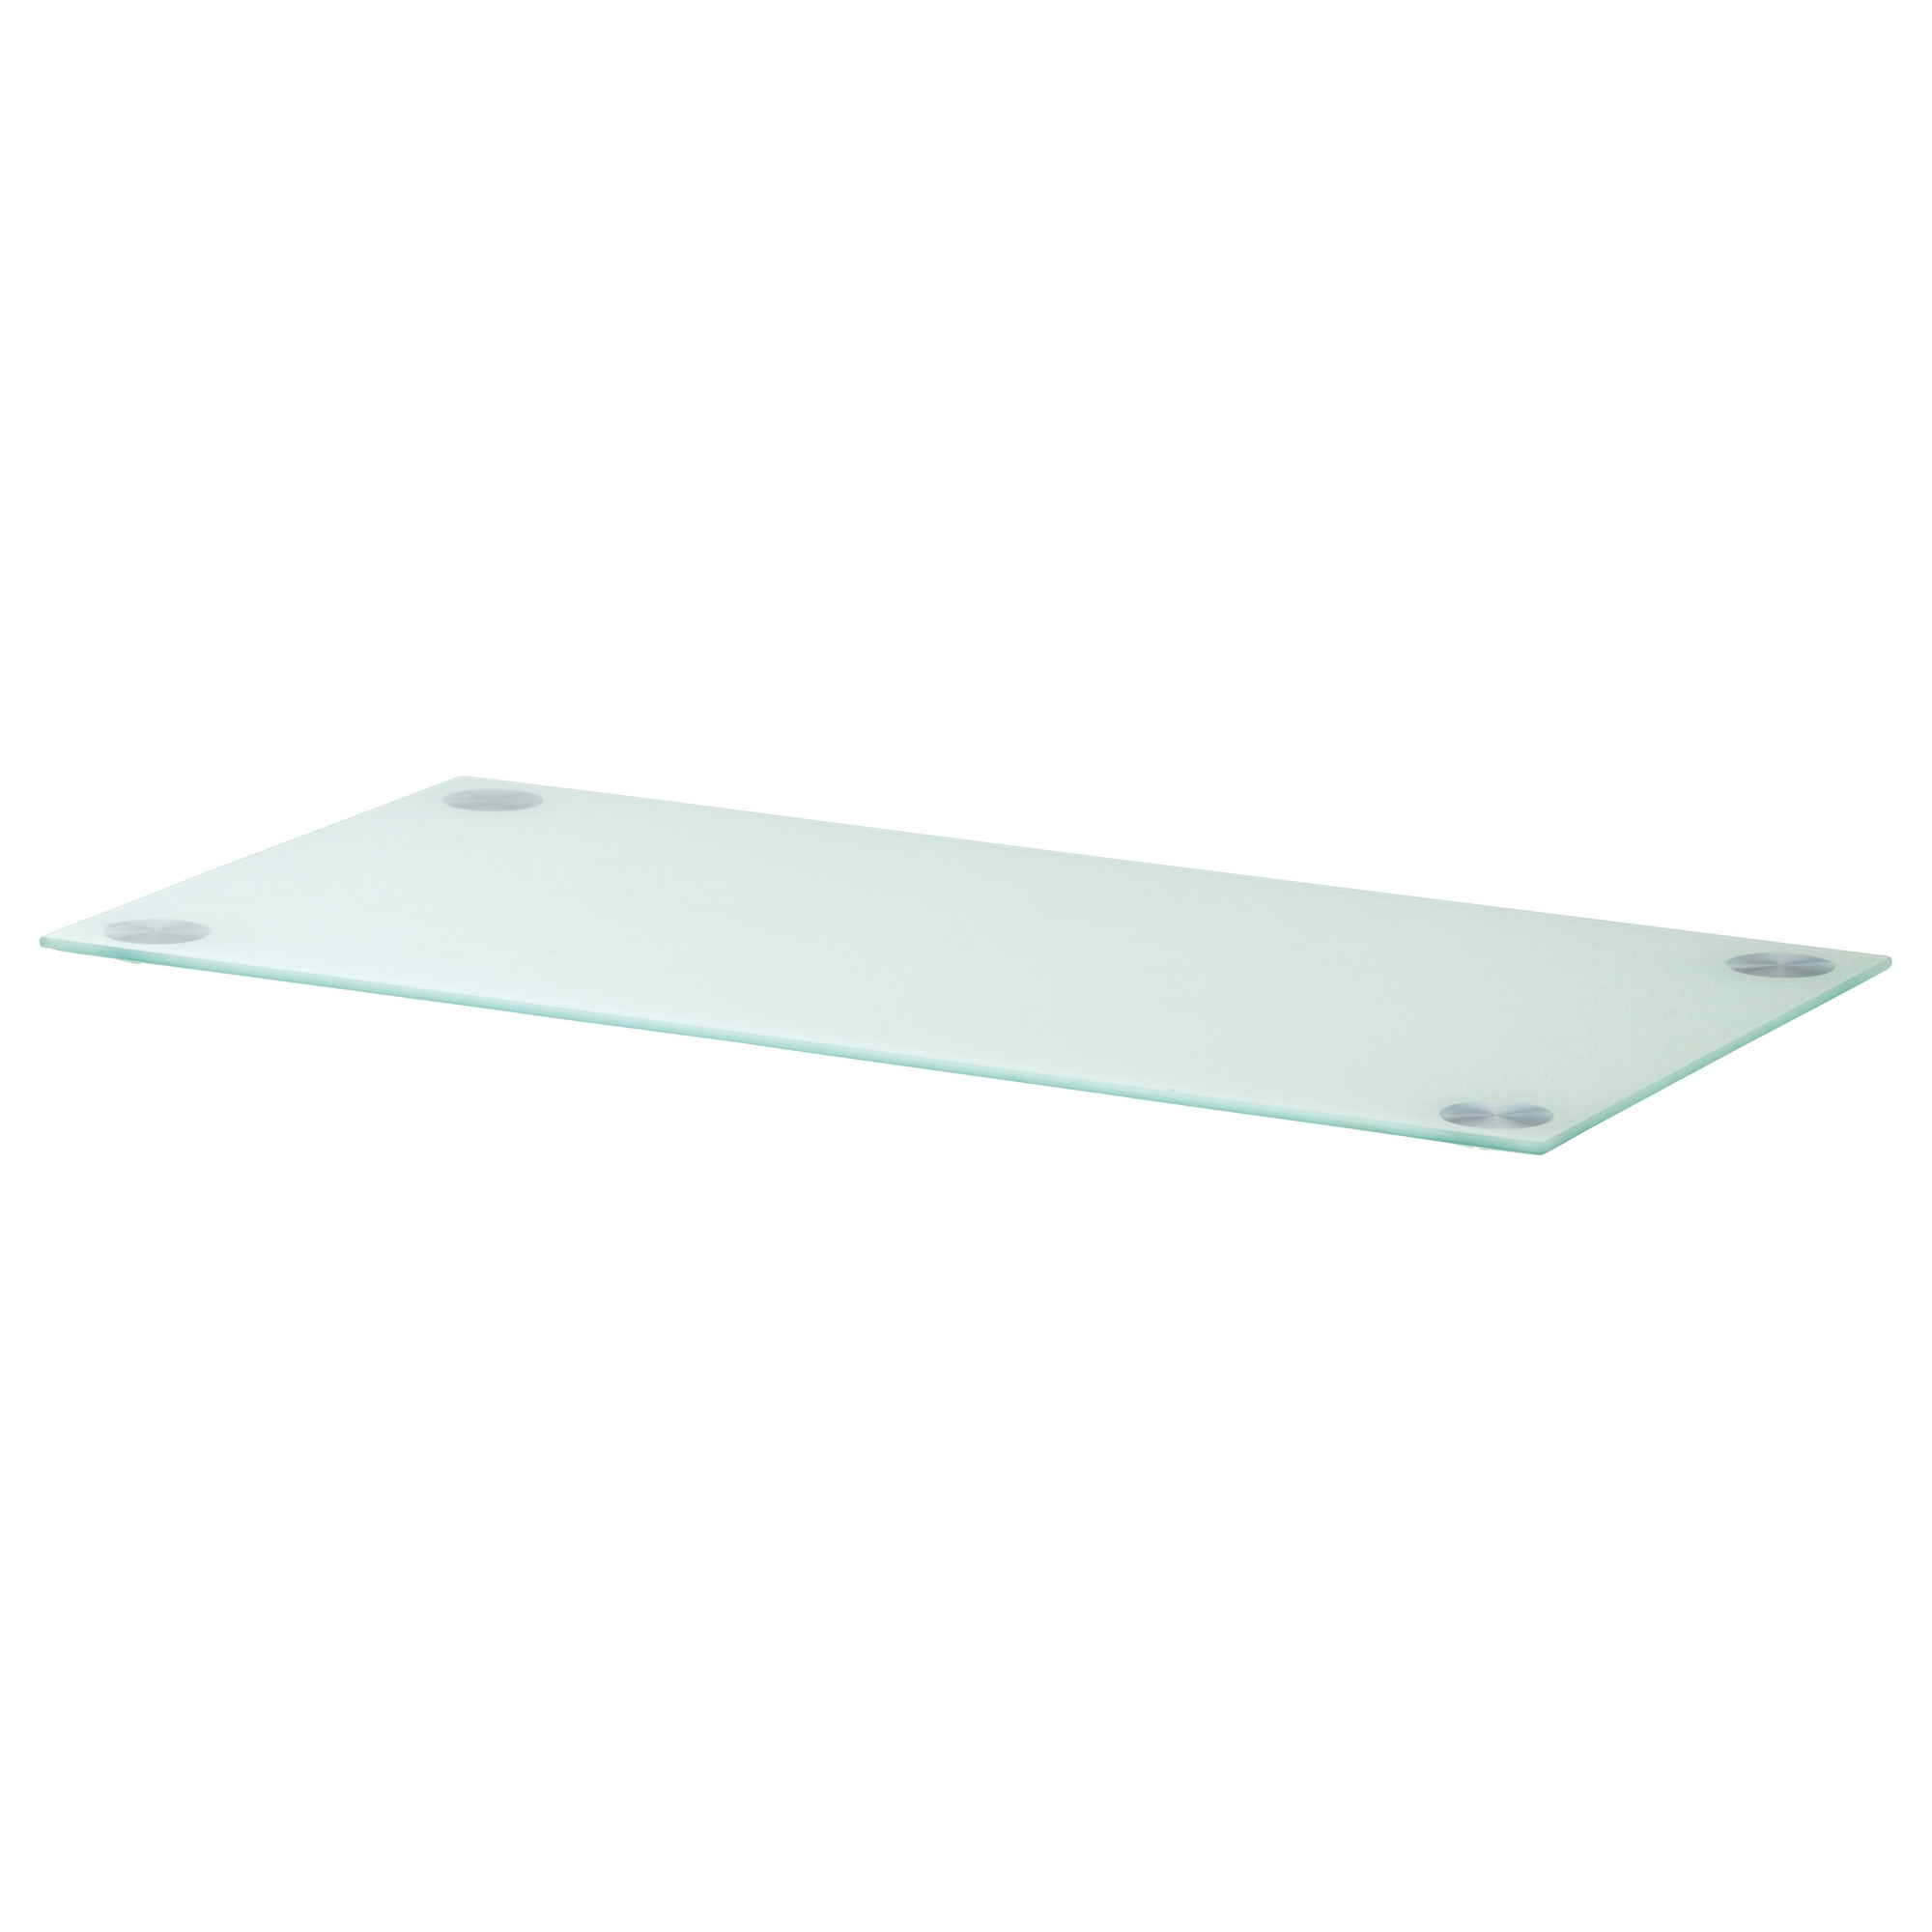 Ikea glass table top - Article